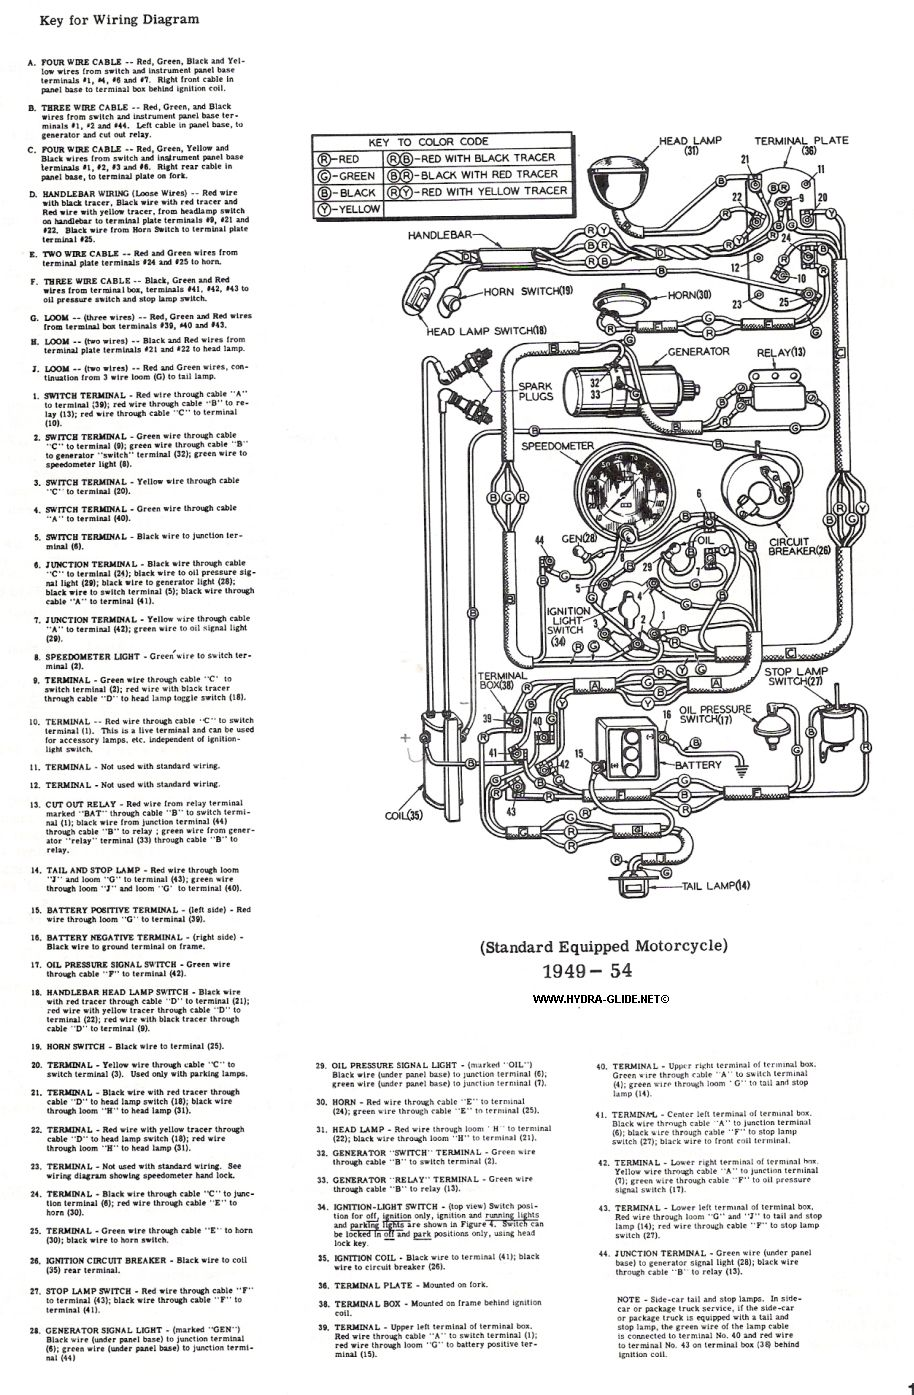 1949 - 1954 Wiring diagram Harley Sdometer Wiring Harness Diagram on